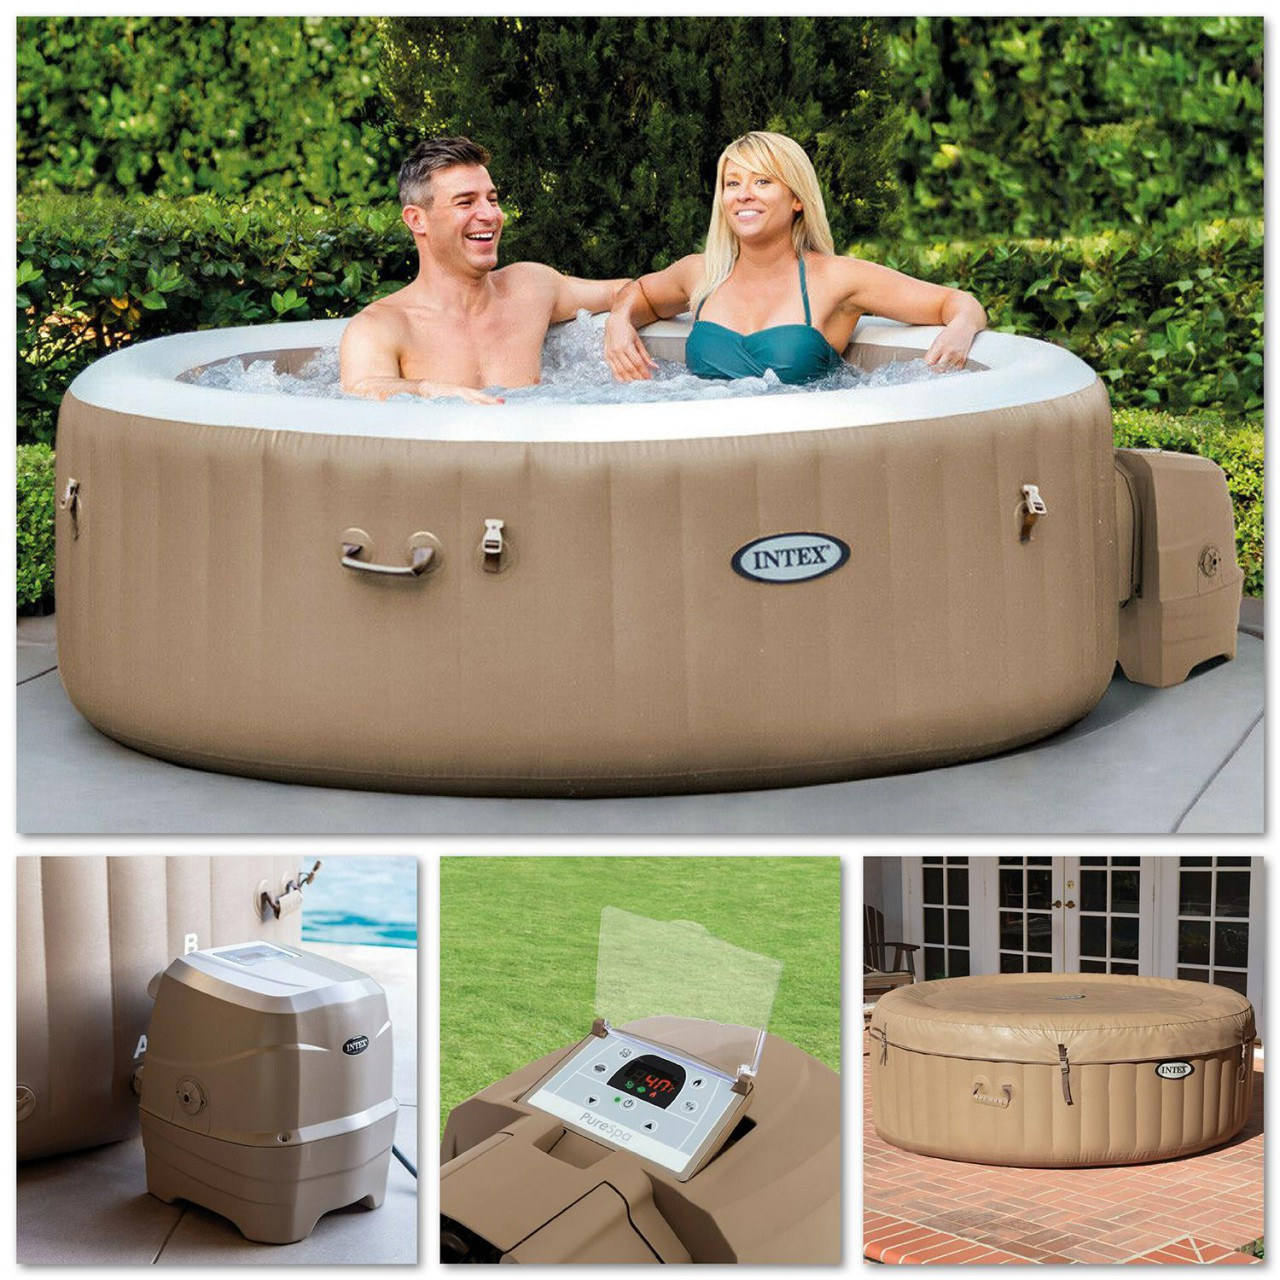 Intex 28426 Whirlpool Pure SPA Bubble Massage 196x71 cm aufblasbar 4 Personen